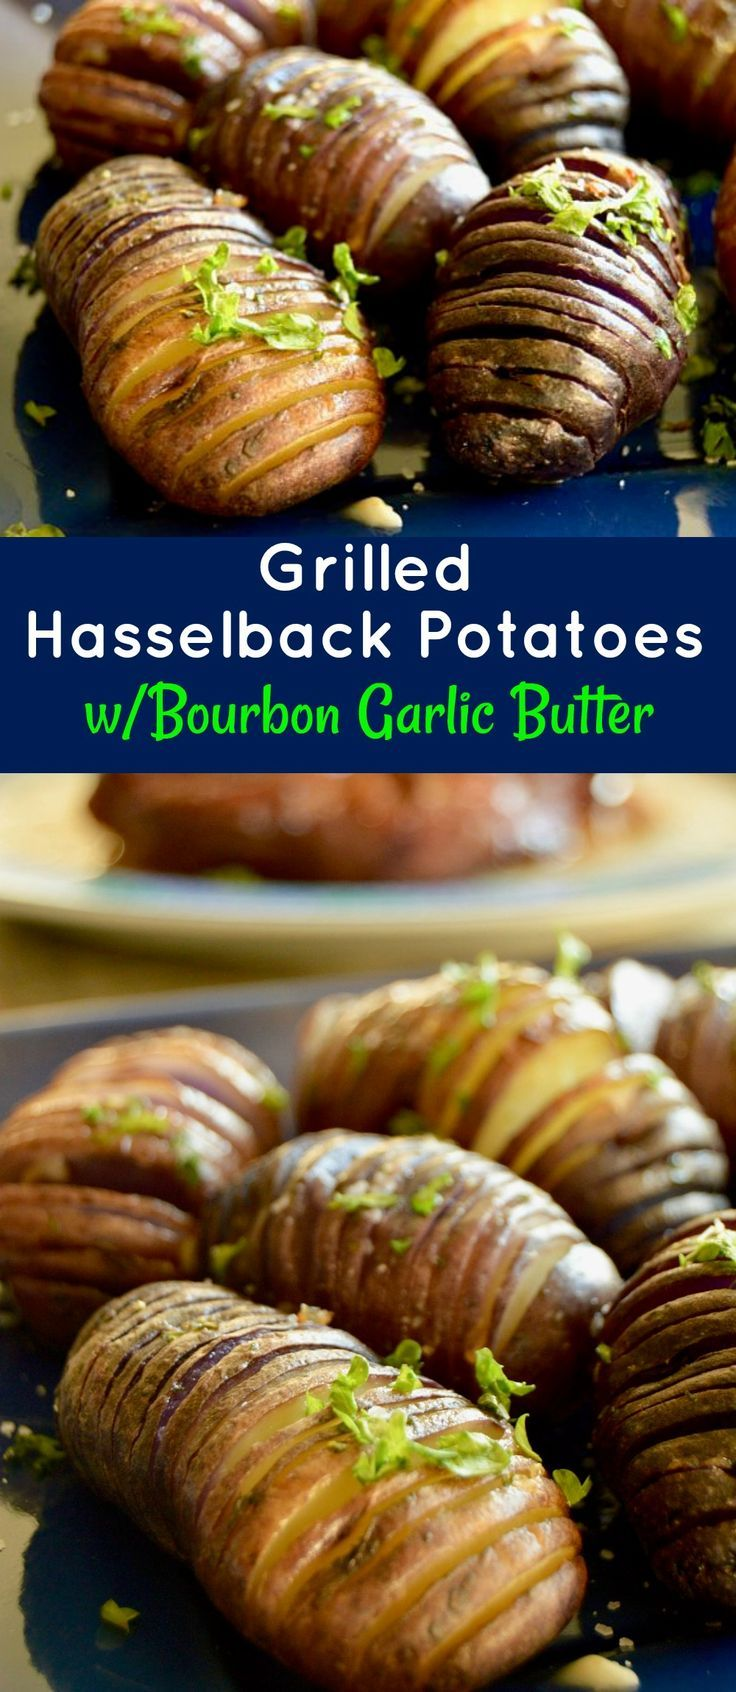 Grilled Hasselback potatoes are ideal for a BBQ side dish. Easy to prep ahead, crunchy on the edges, lightweight centers drenched with bourbon garlic butter for lots of flavor! via @westviamidwest